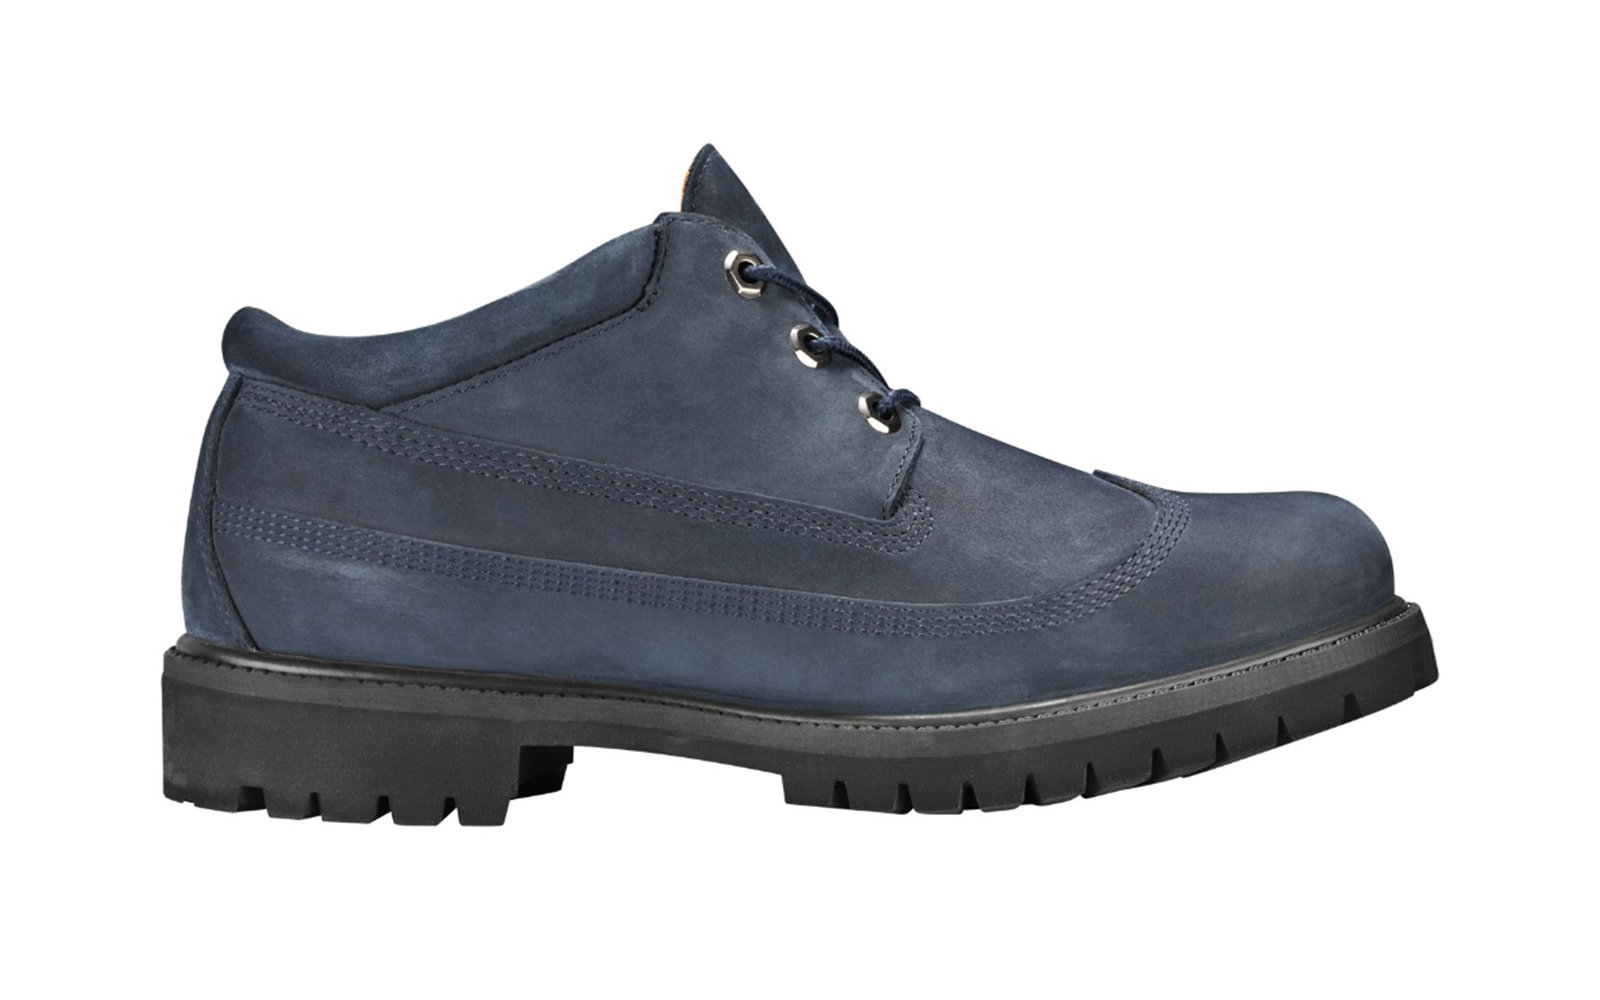 Best Ankle Boots: Timberland x Engineered Garments Waterproof Oxford in Navy